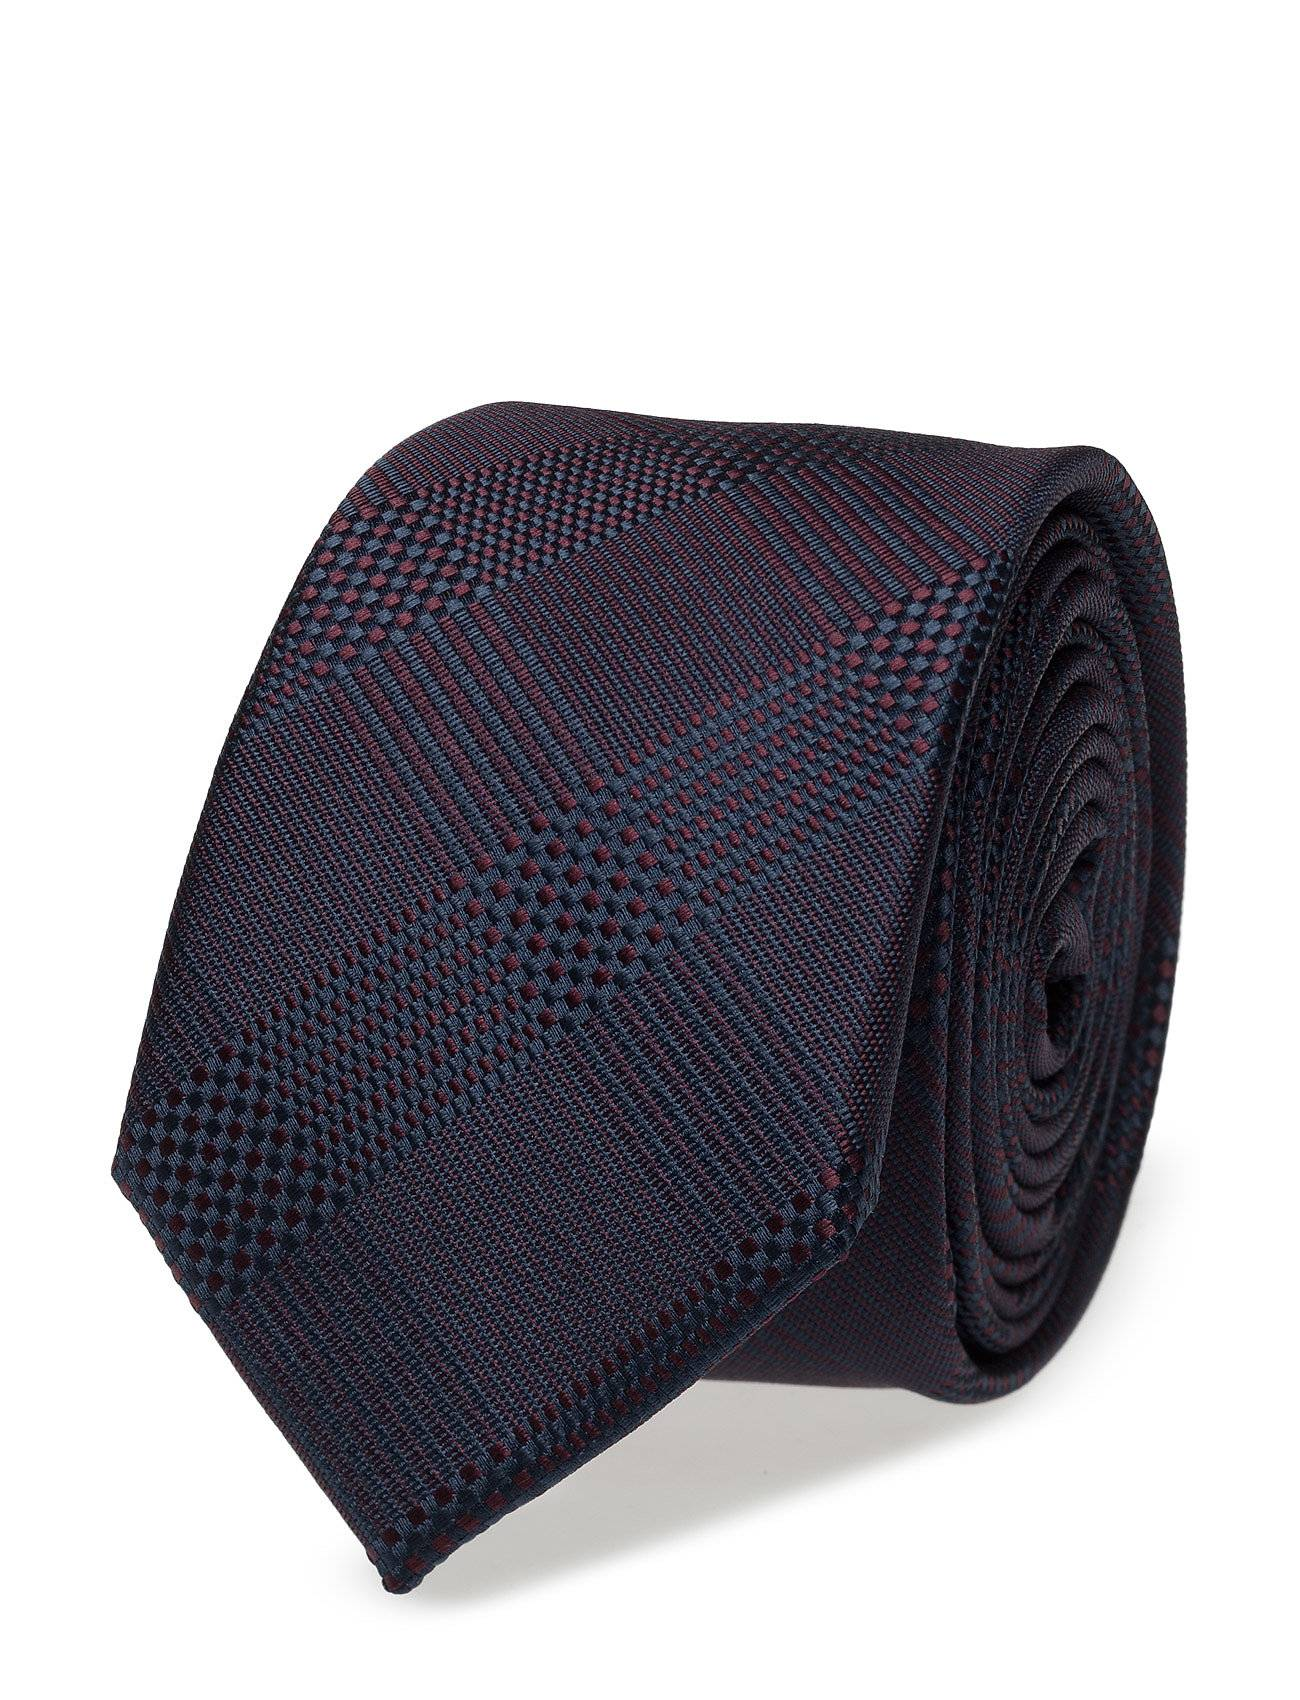 Selected Homme Shdmeli Tie/Bowtie Box